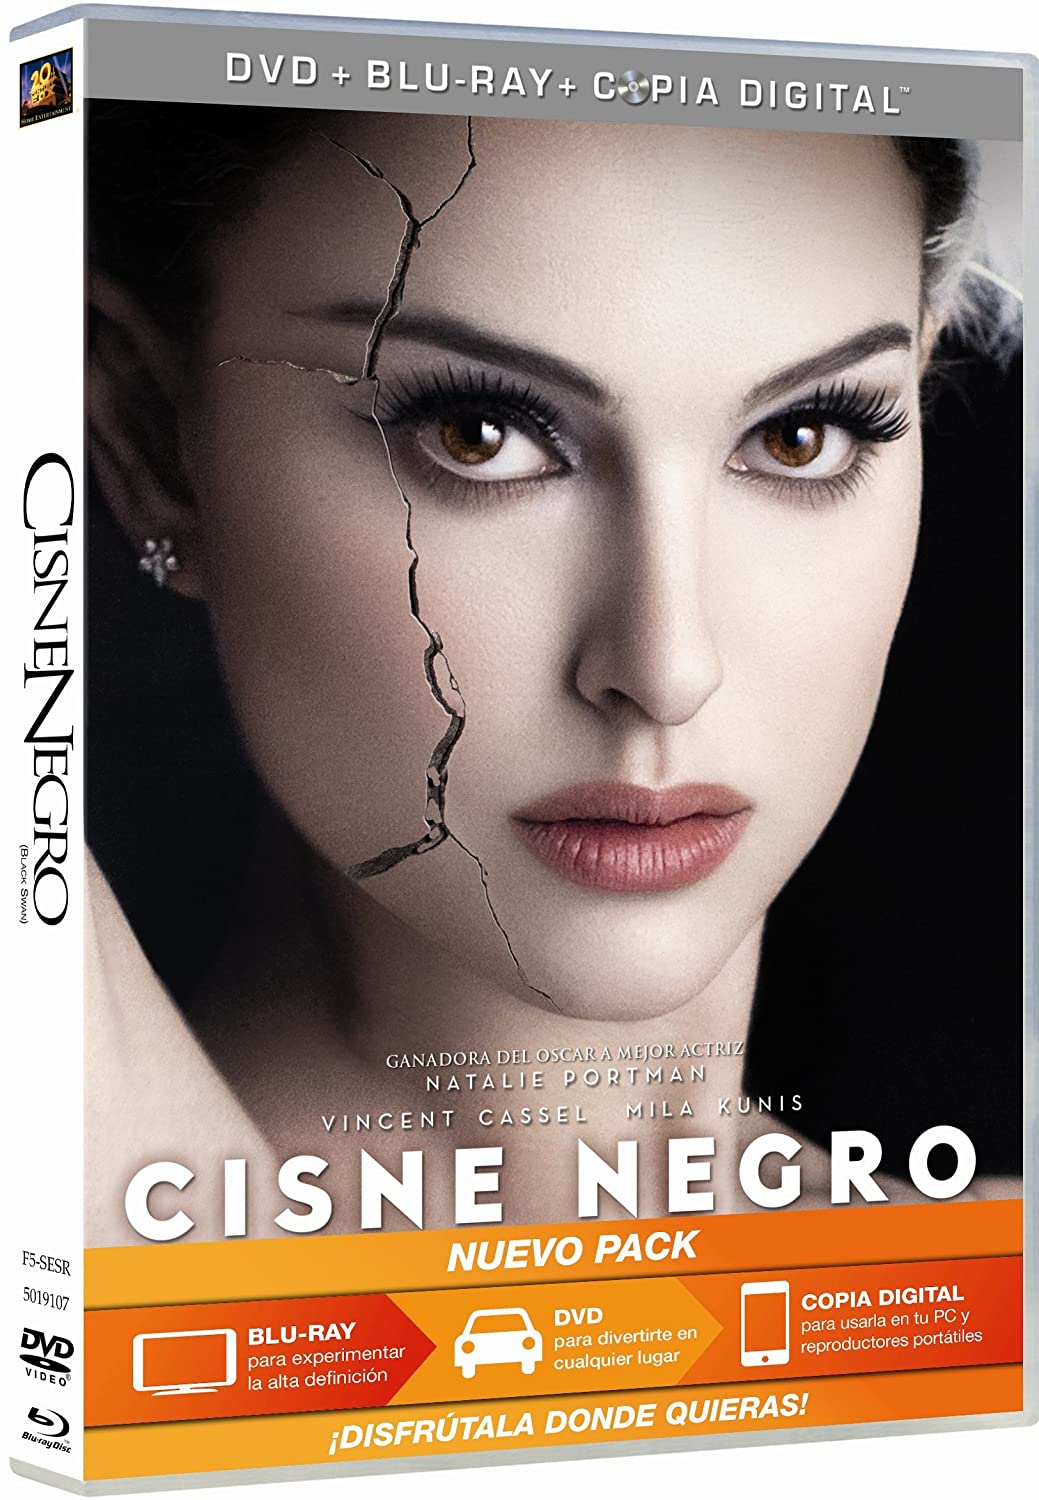 Amazon.com: Cisne Negro (Dvd + Br + Copia Digital) [Blu-Ray ...